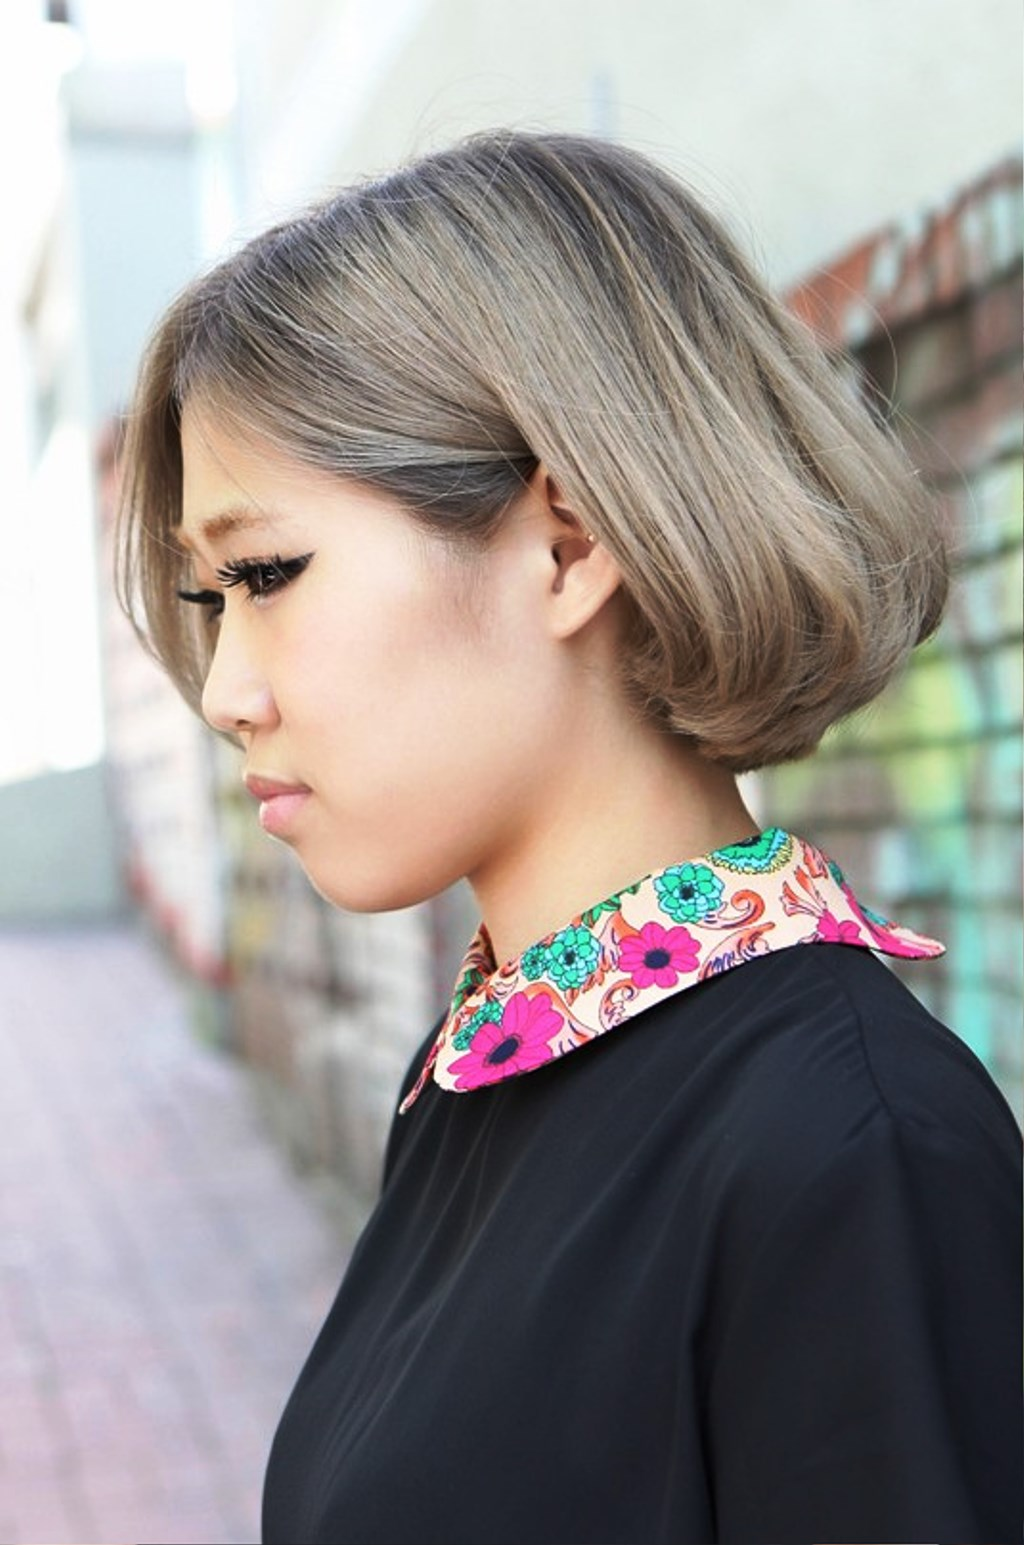 Pictures Of Japanese Girls Short Bob Hairstyles